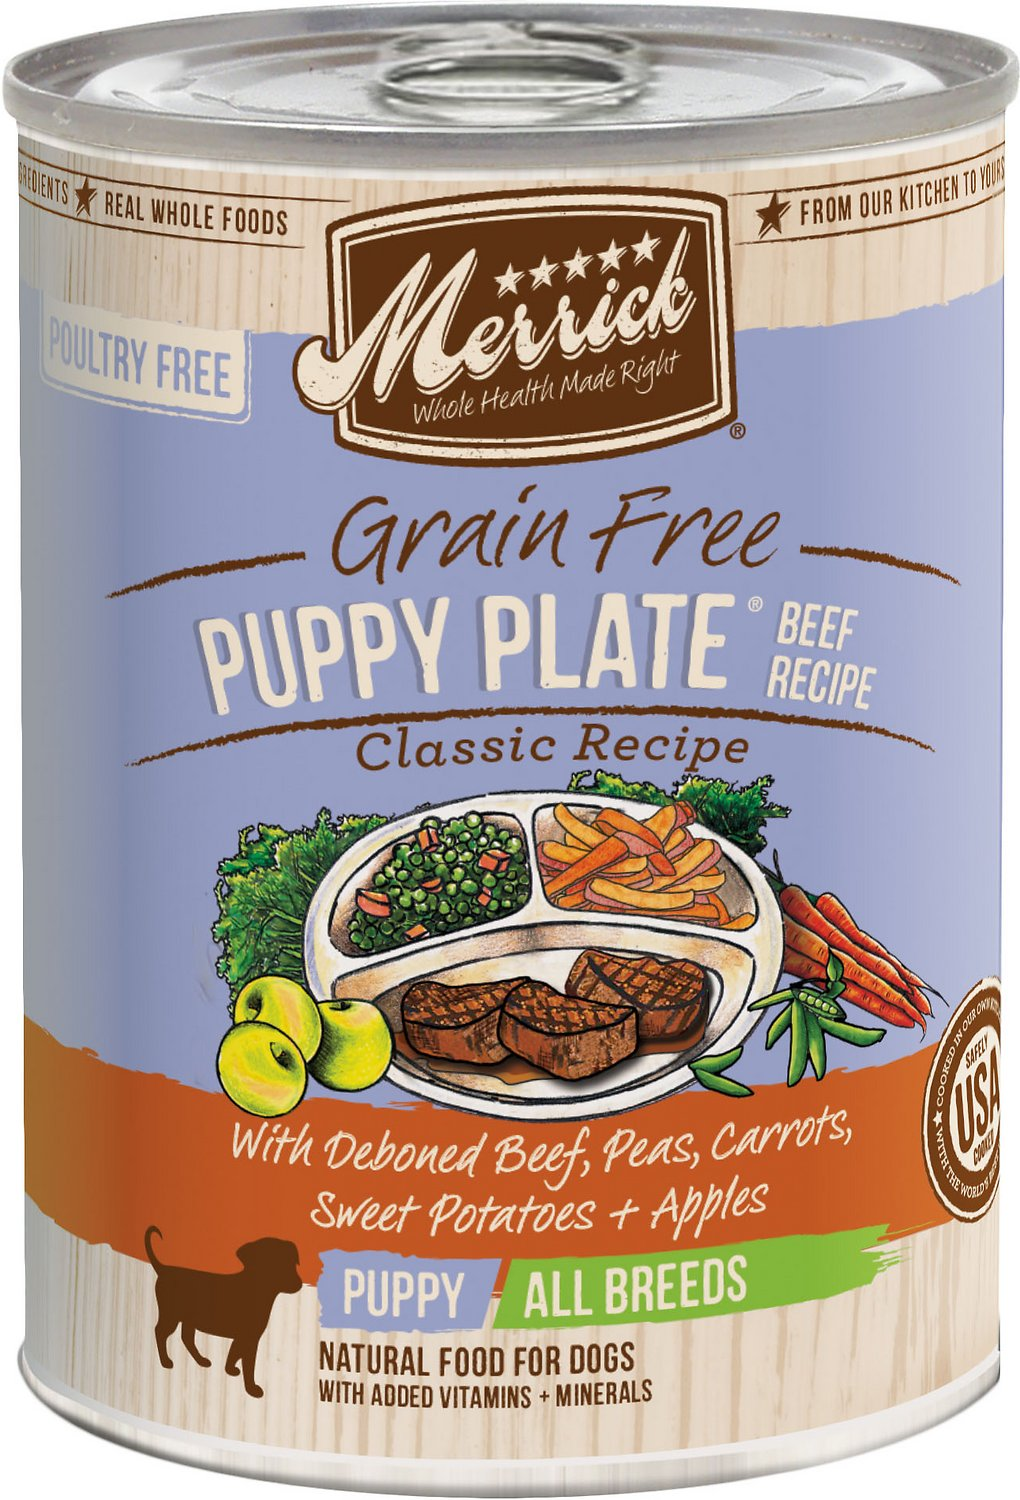 Merrick Grain-Free Puppy Plate Beef Recipe Canned Dog Food